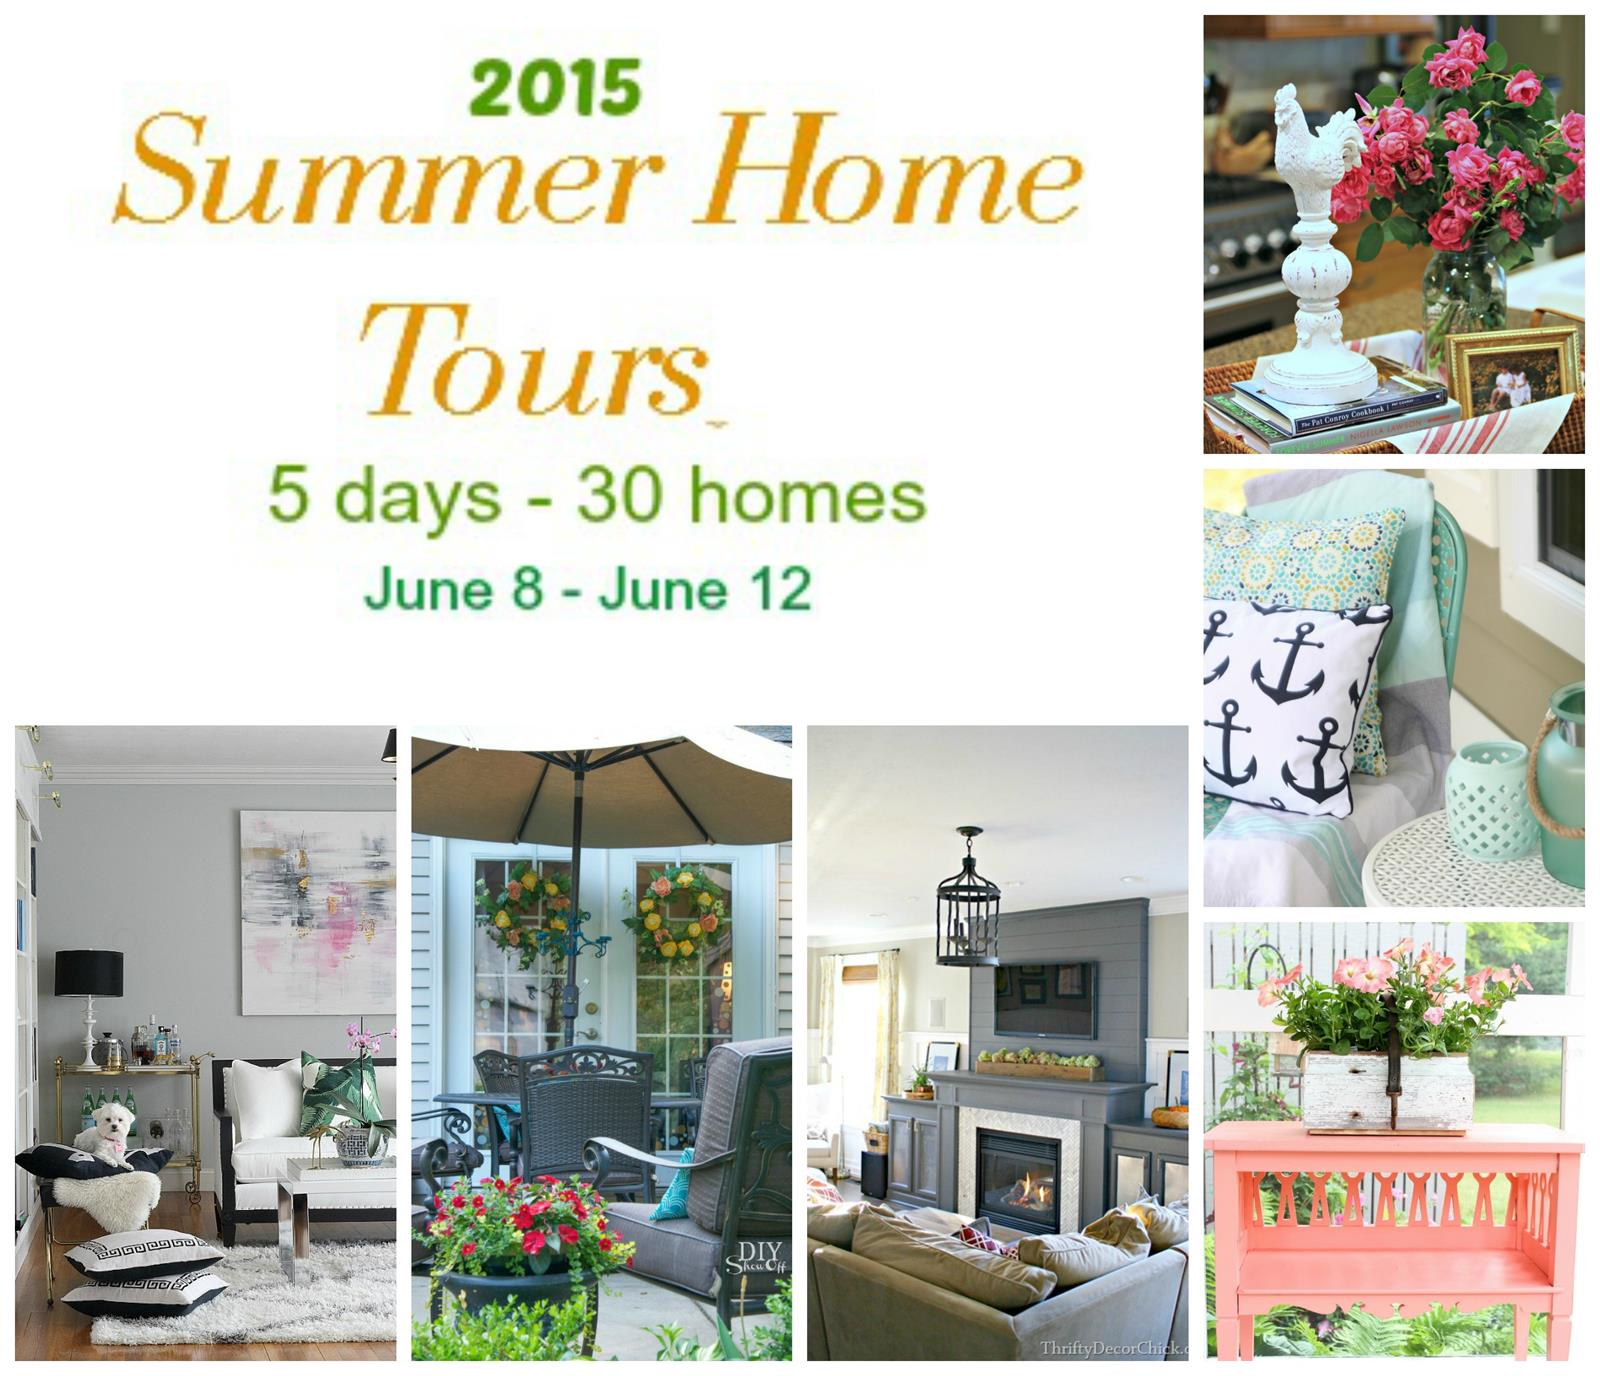 Our Summer Home Tour! from Thrifty Decor Chick